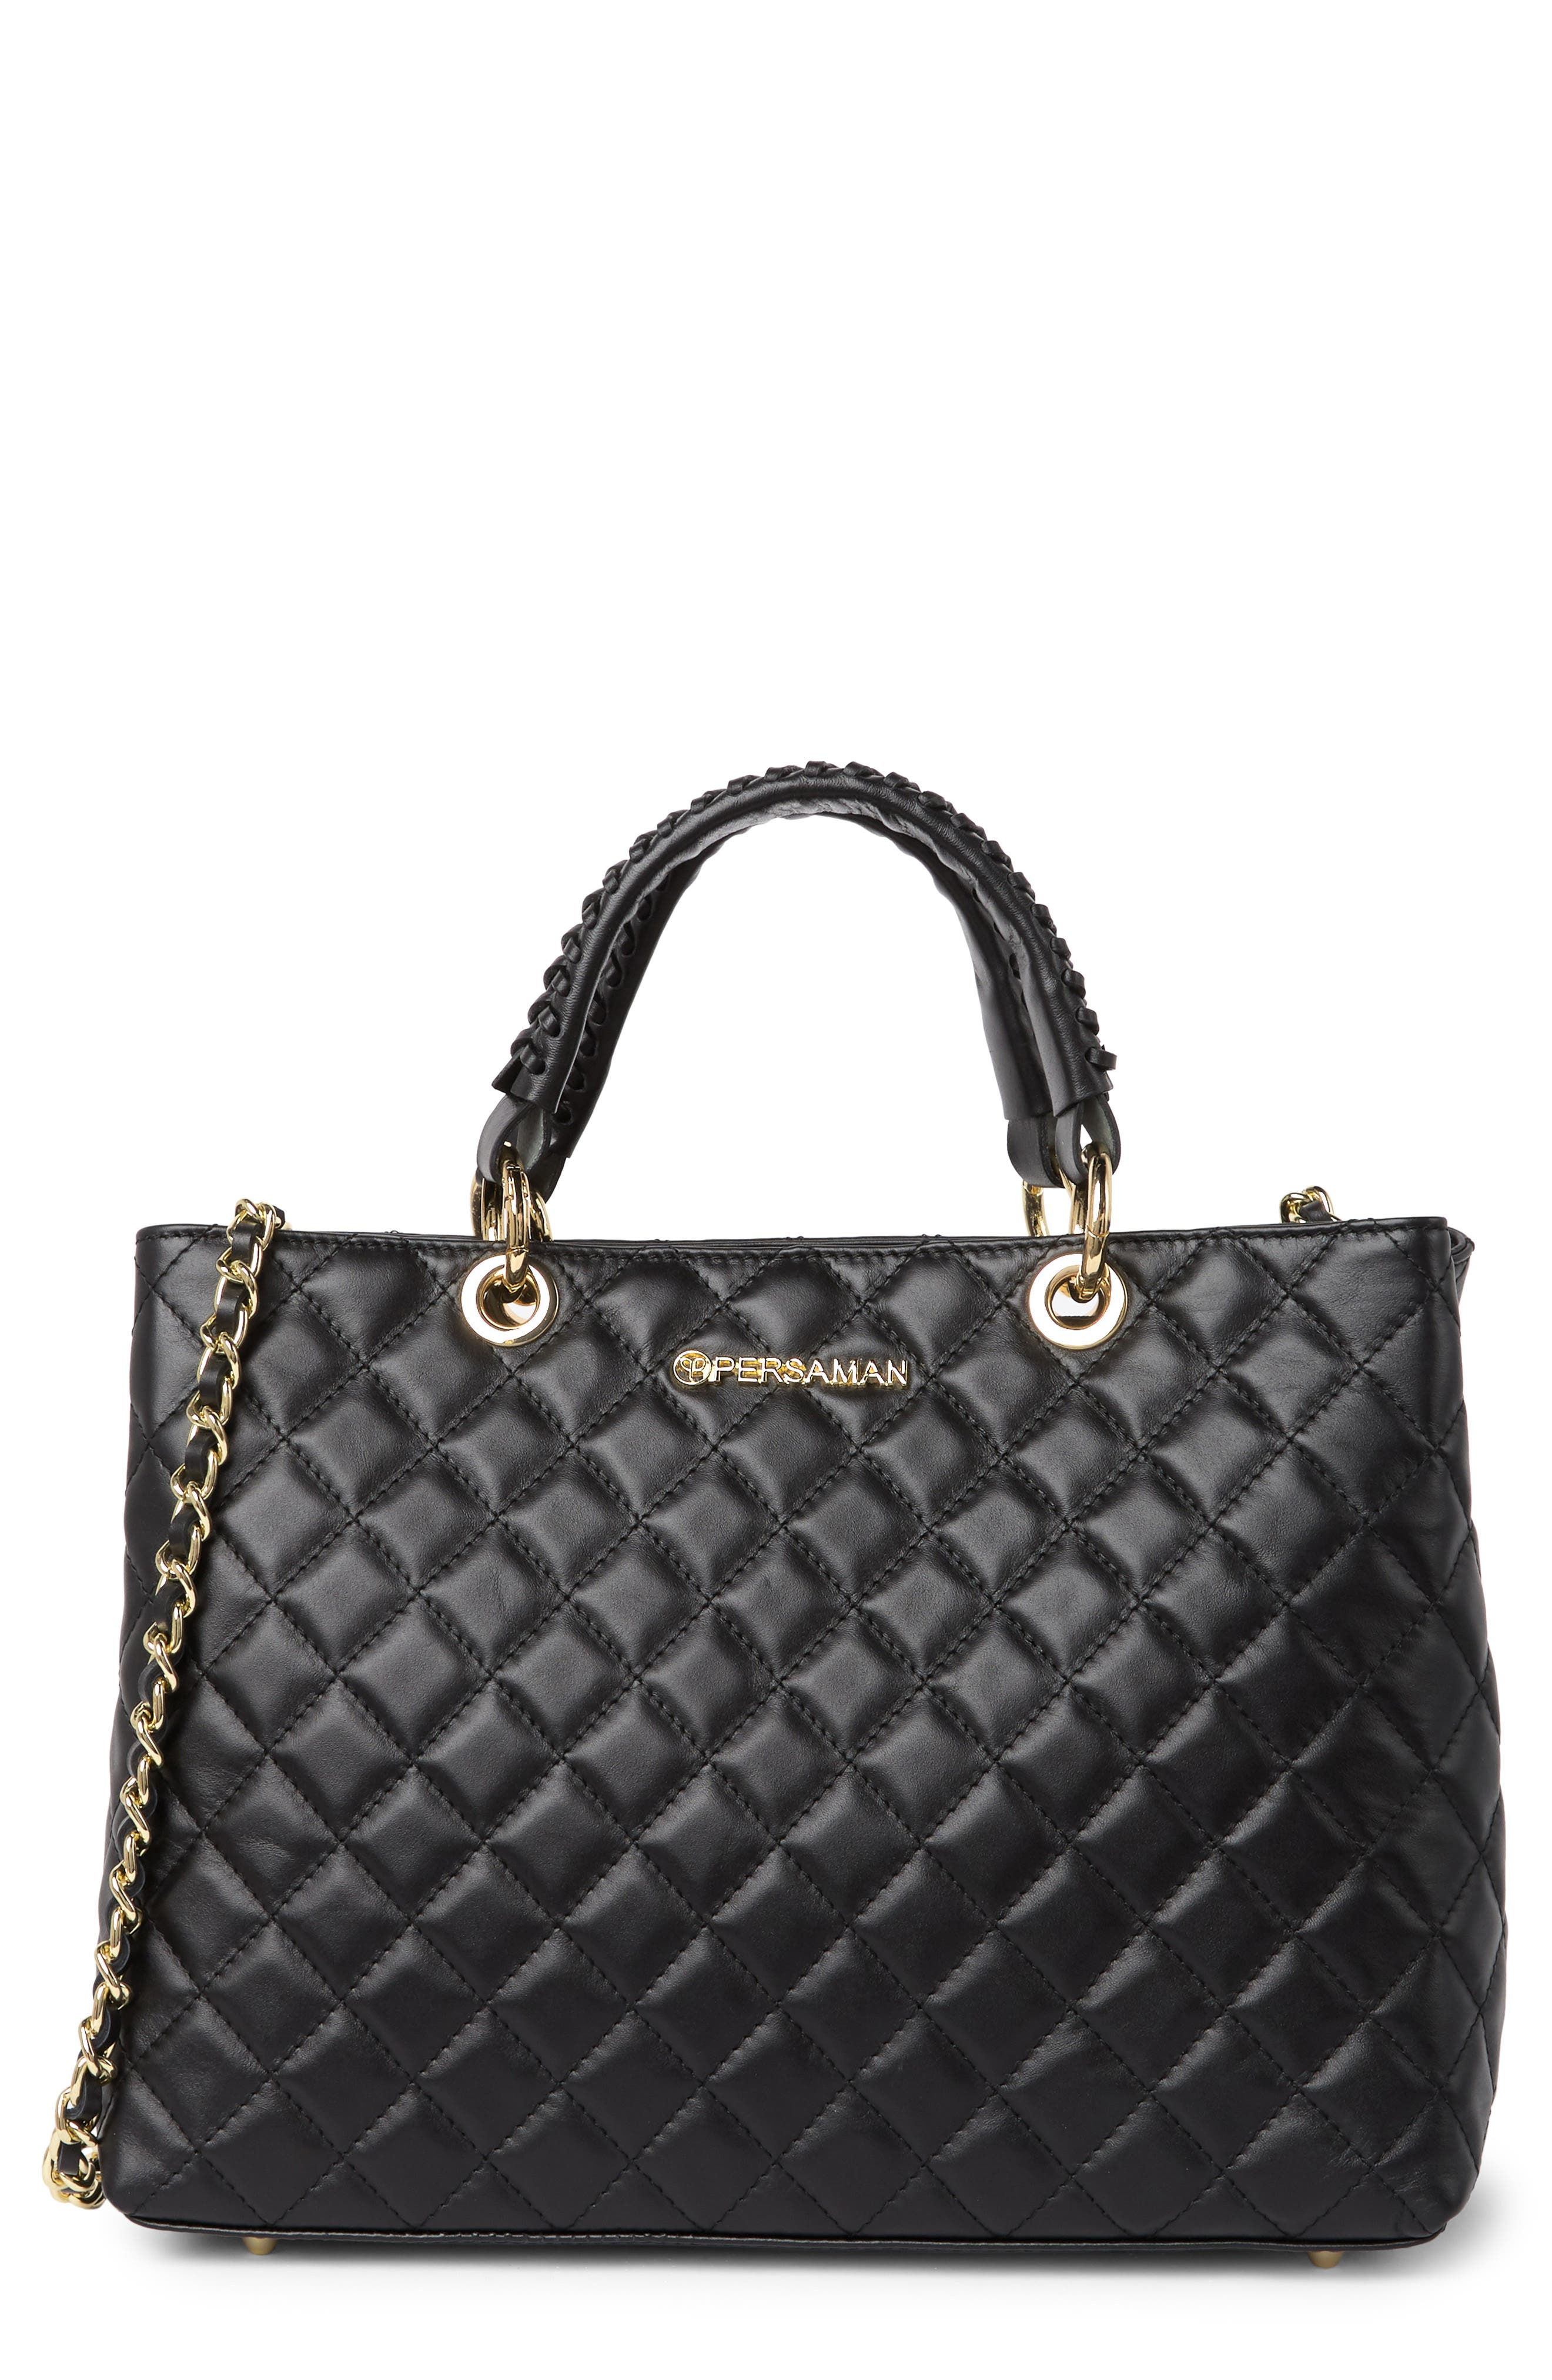 Image of Persaman New York Dulce 21 Quilted Tote Bag